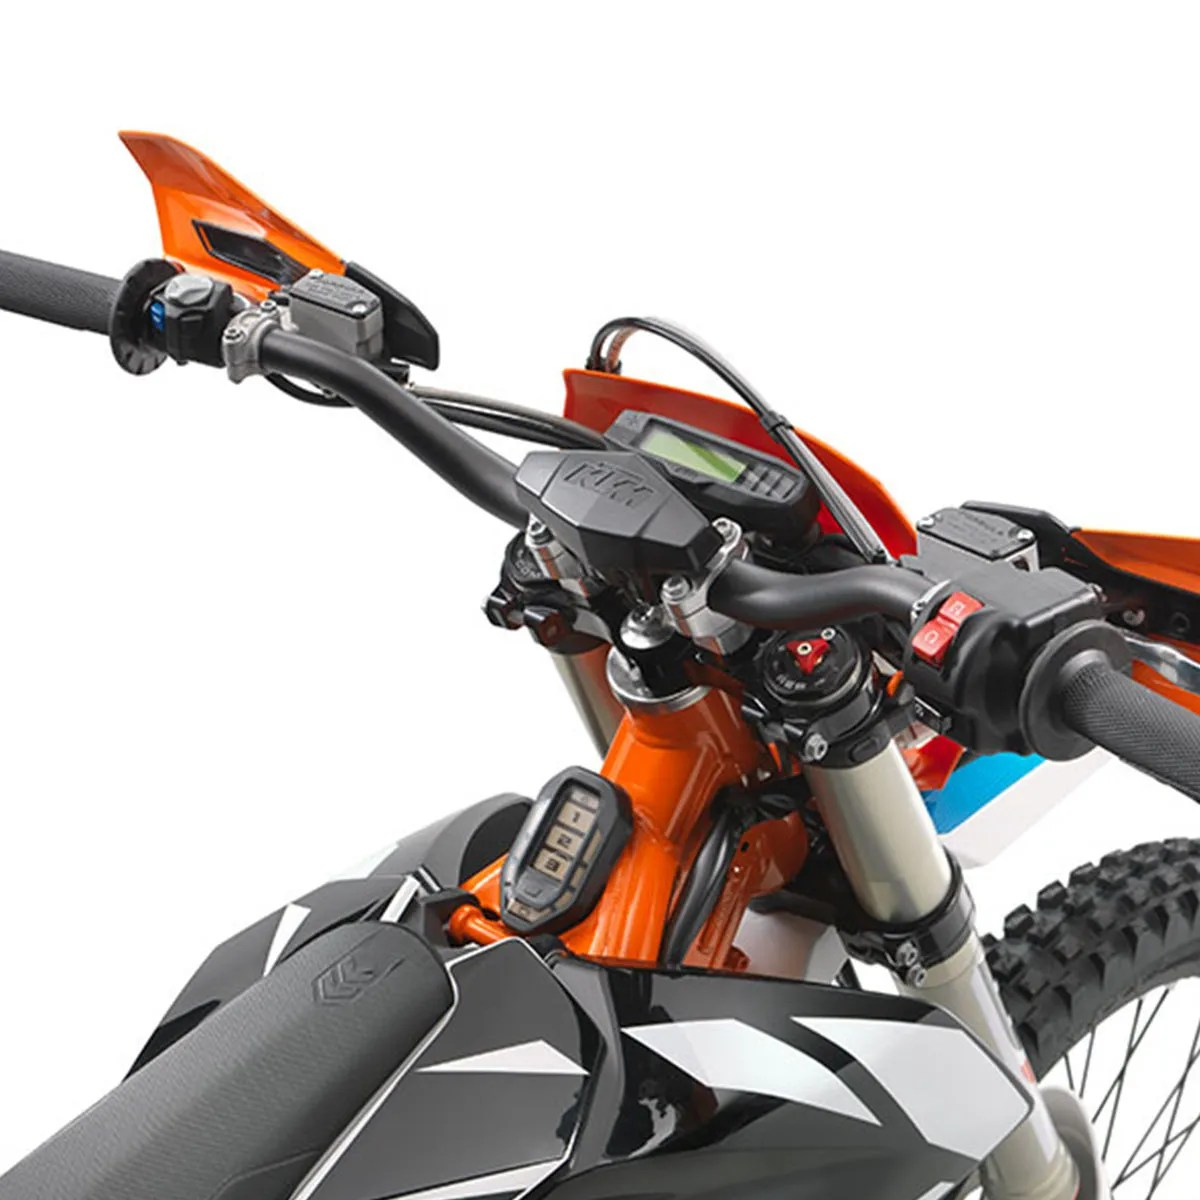 GUIDON-KTM-FREERIDE-E-XC-2020